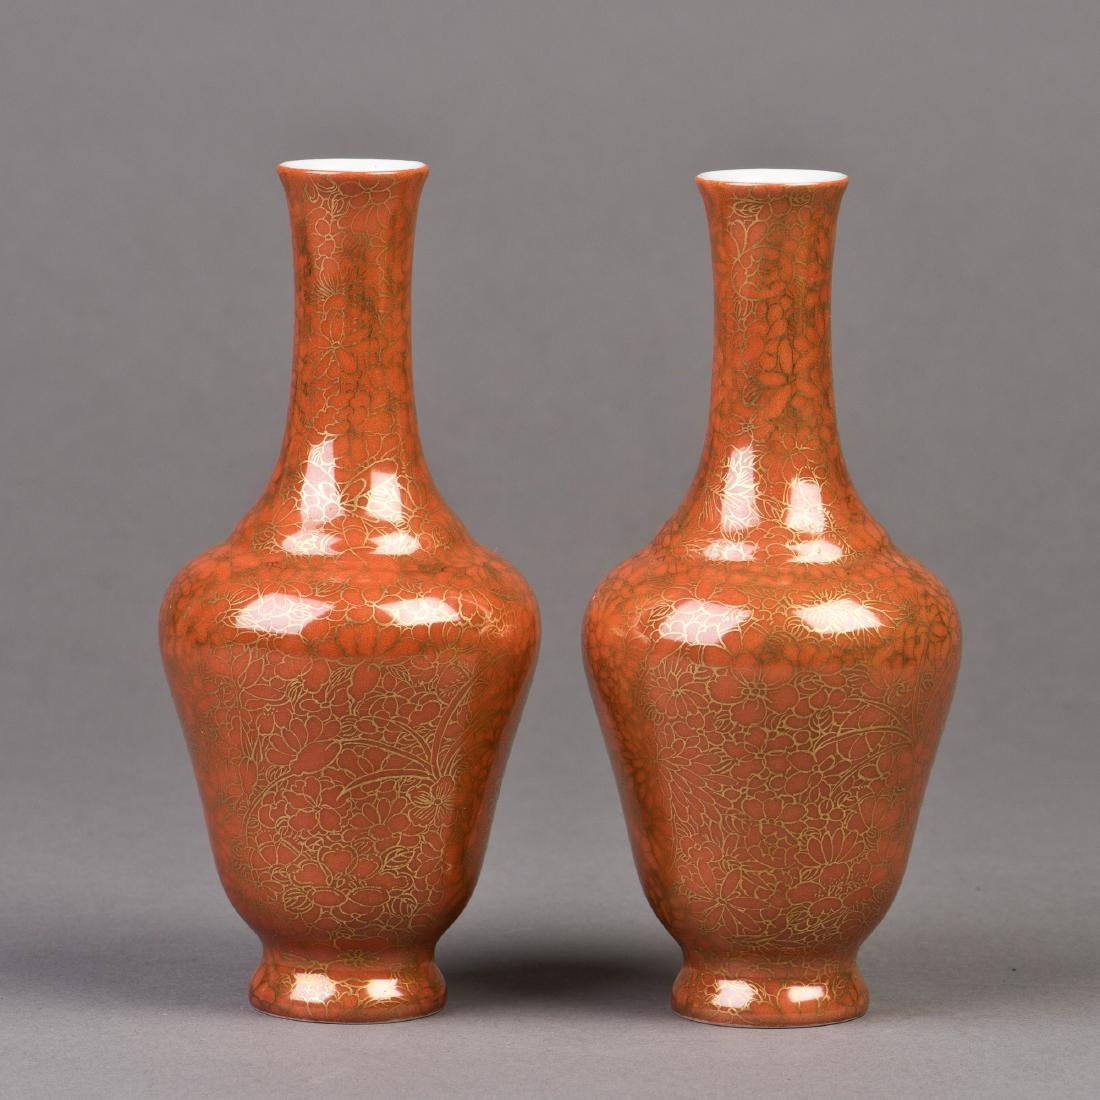 A PAIR OF TENNE-GLAZED PORCELAIN VASES